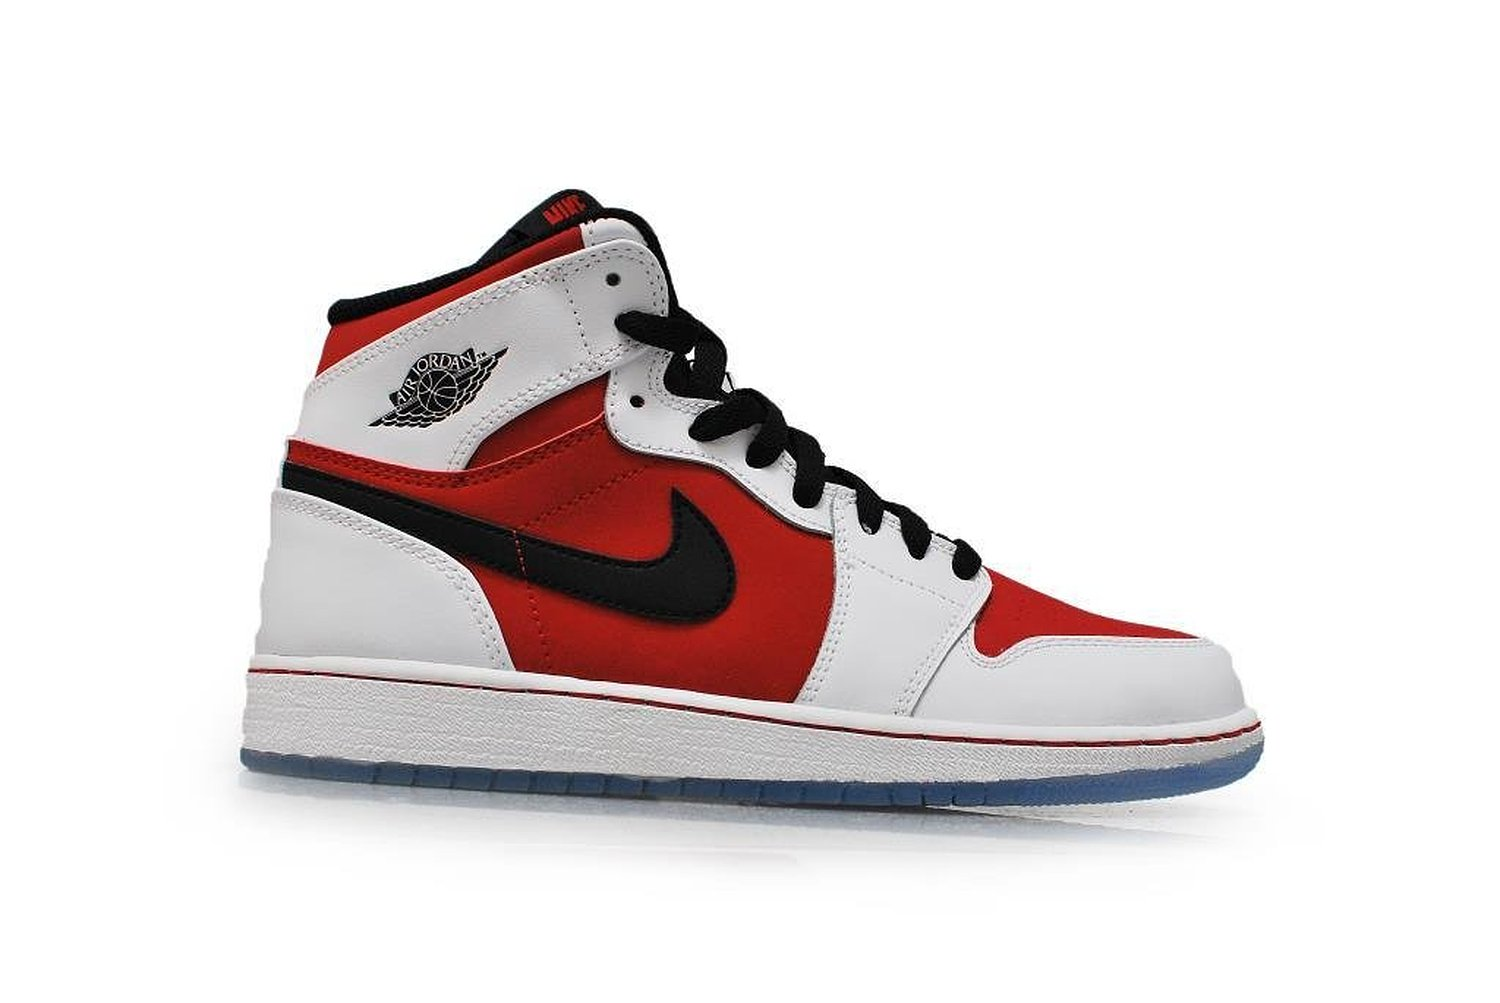 Boys' Nike Air Jordan 1 Retro High OG BG - 575441 123